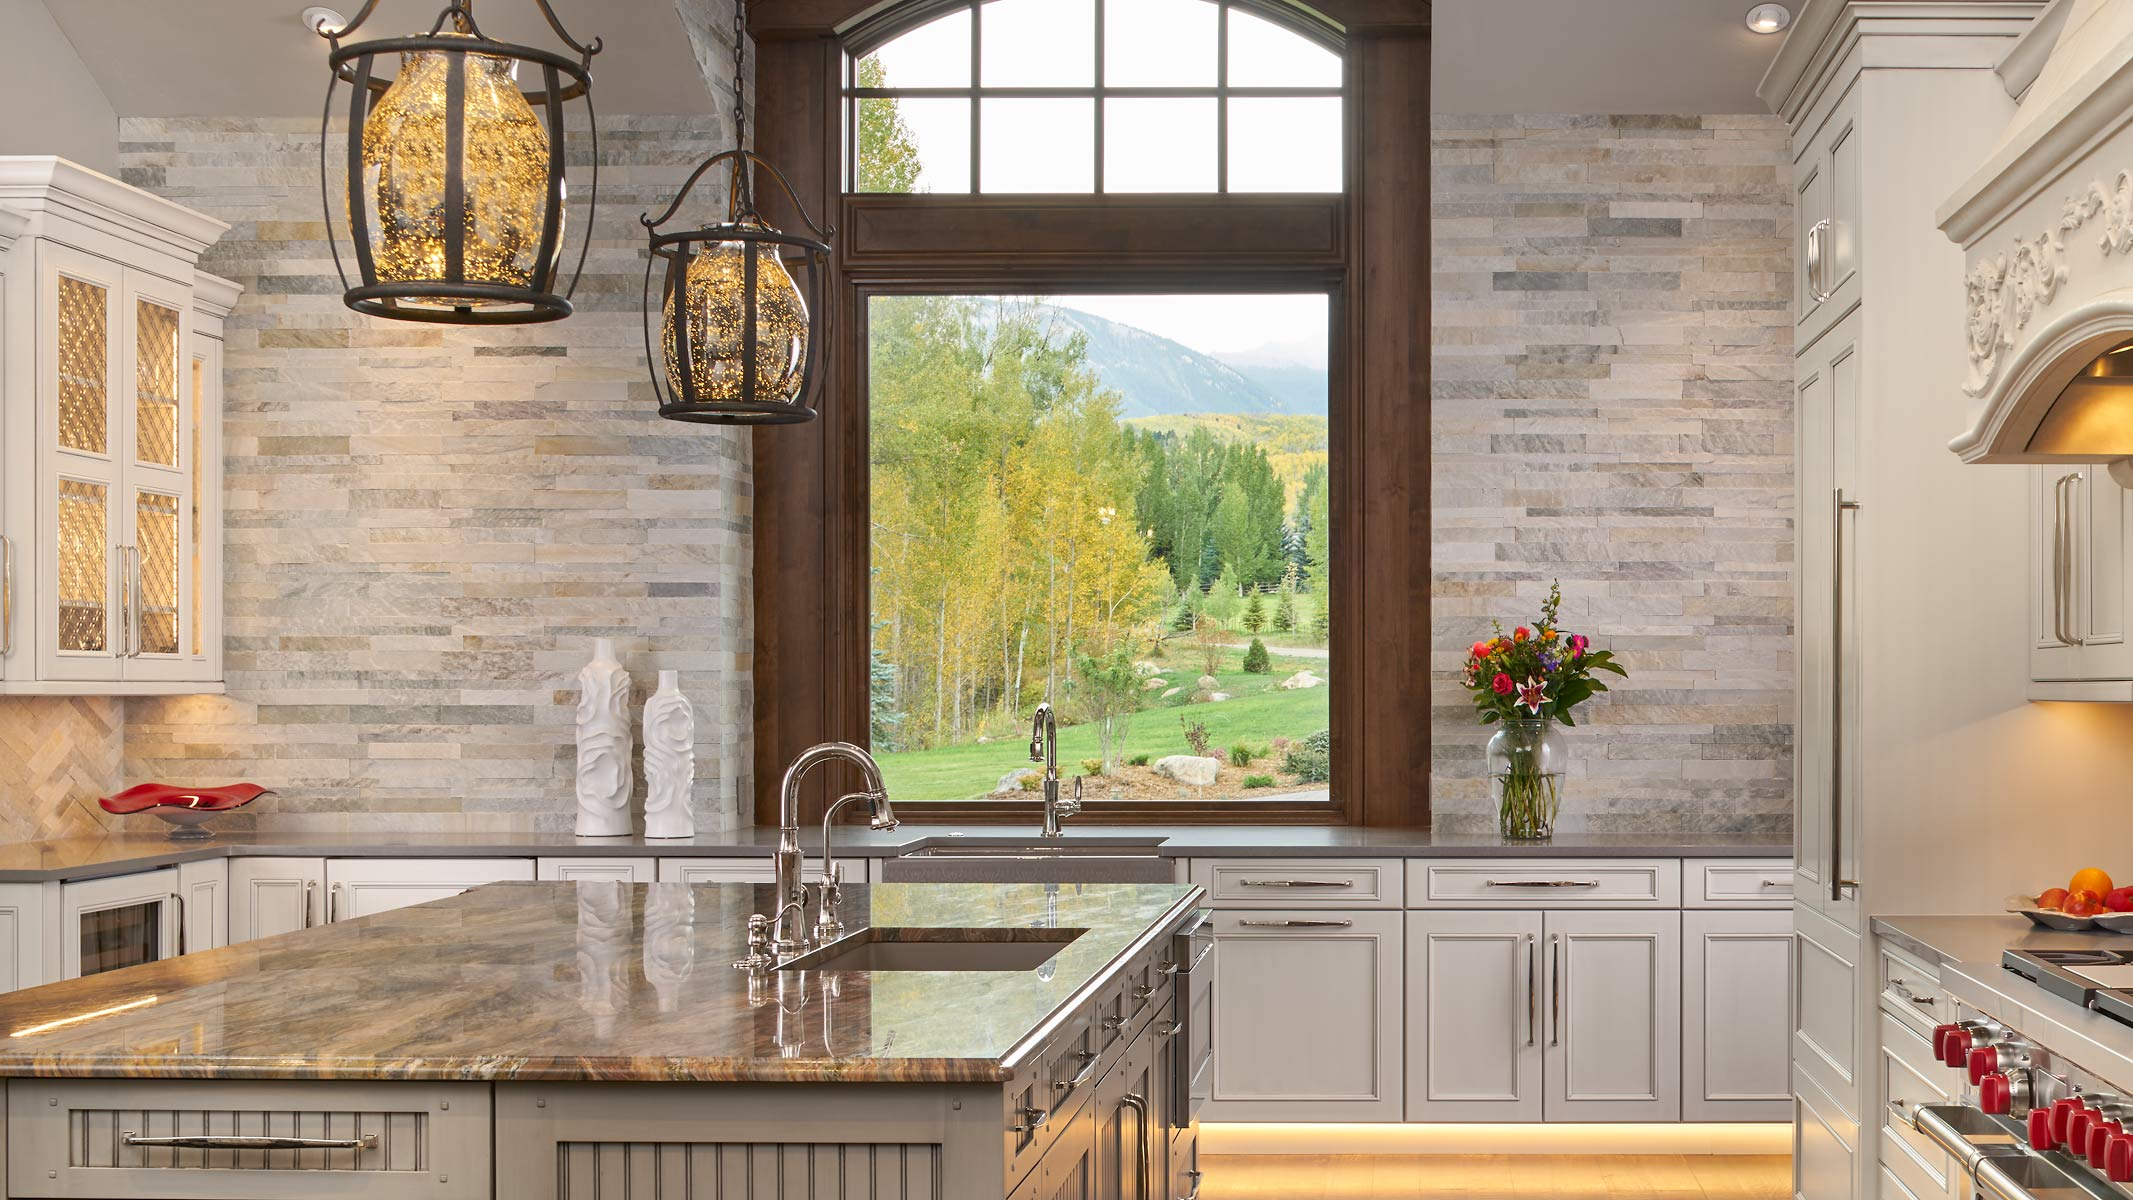 McCoy-Design-Neolith-Edwards-9-22-17-Kitchen-16X9-Web.jpg